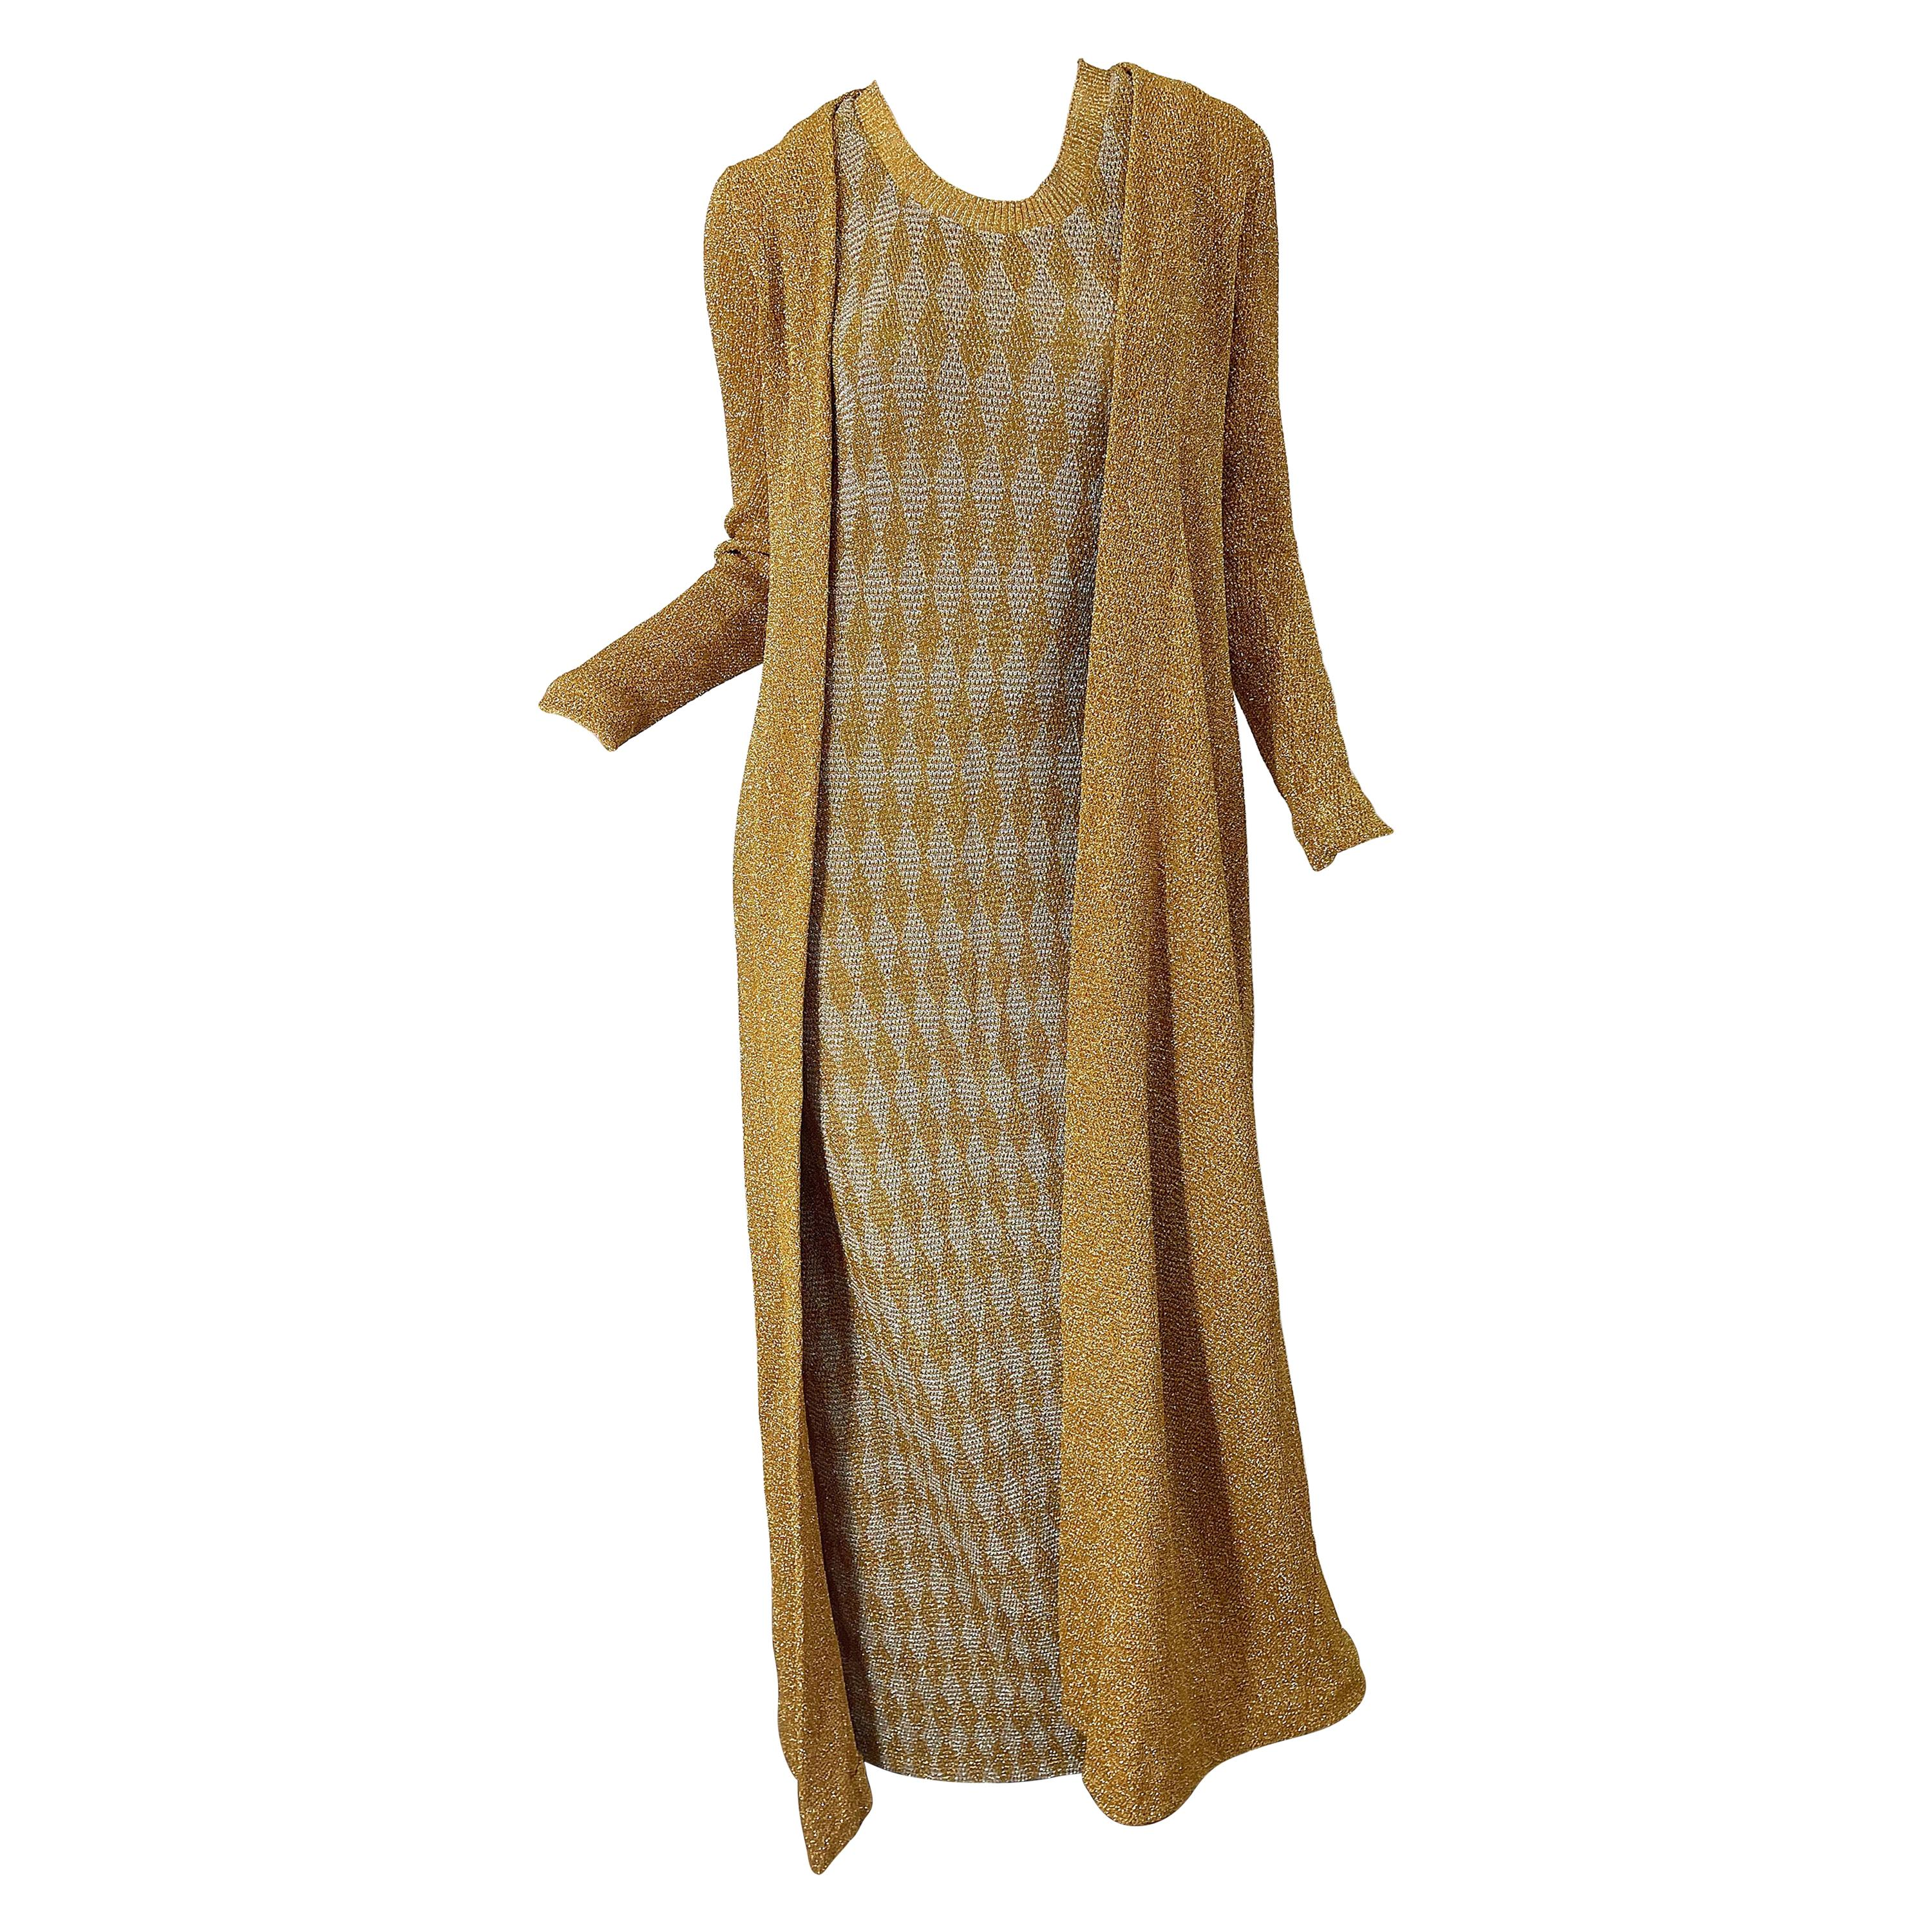 1970s Halston NWT Gold + Silver 70s Vintage Lurex Gown + Duster Cardigan